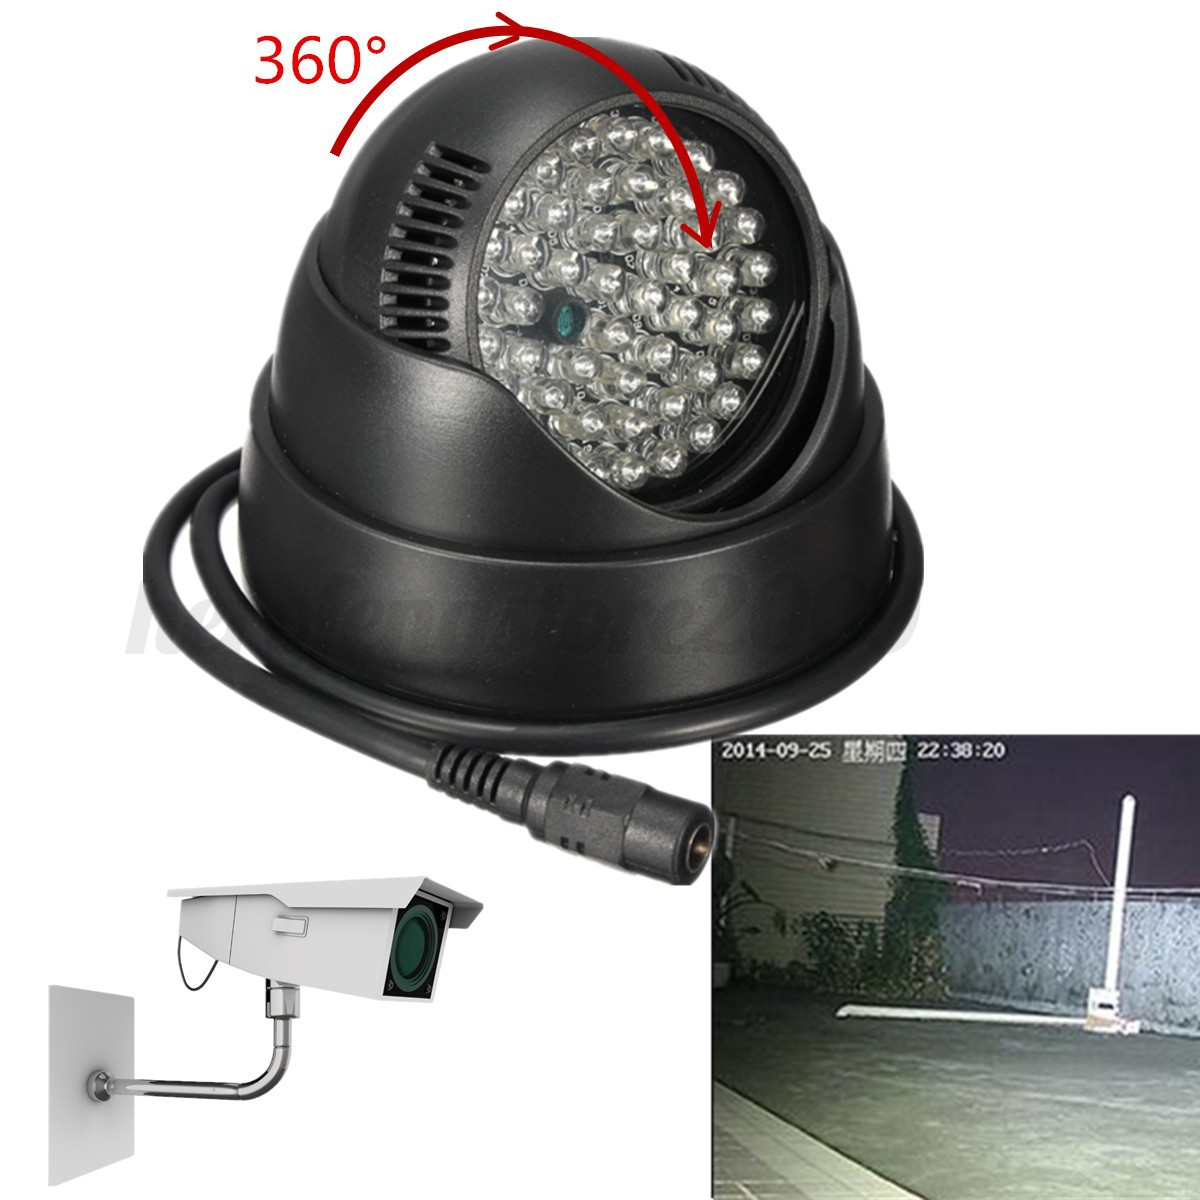 ir infrared night vision light lamp for security camera cctv. Black Bedroom Furniture Sets. Home Design Ideas